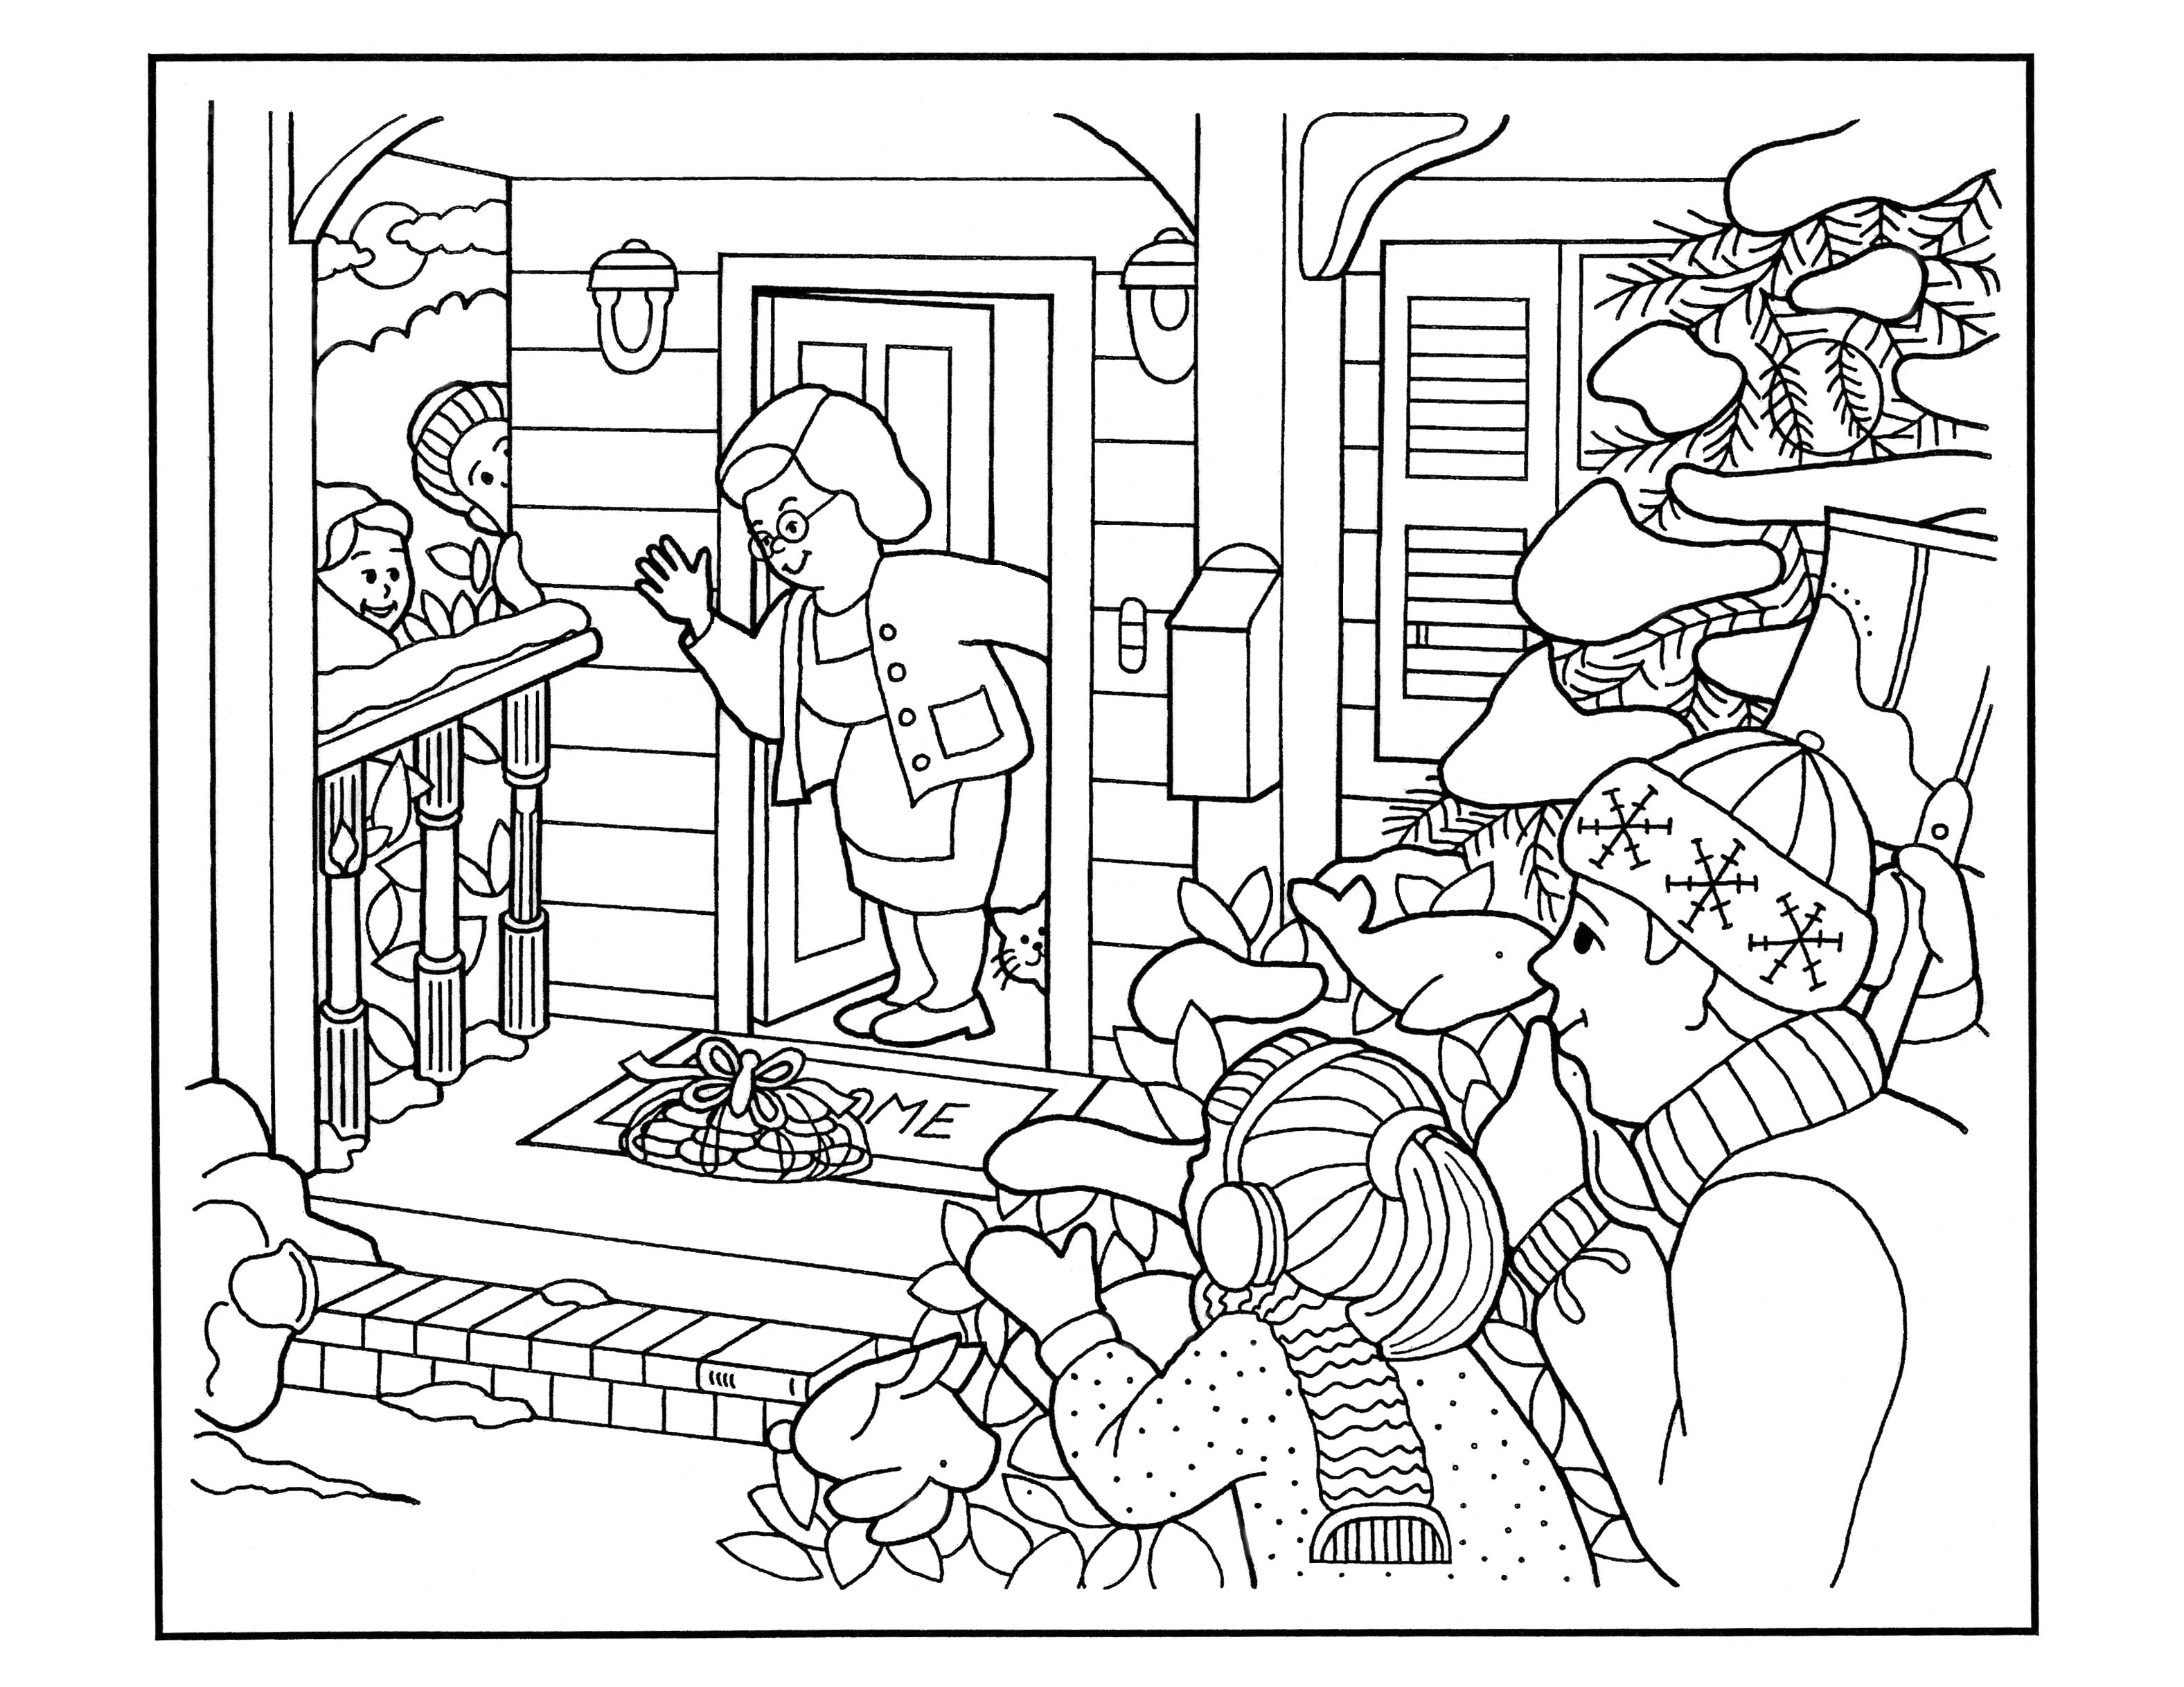 A coloring page of an elderly woman finding cookies on her porch.